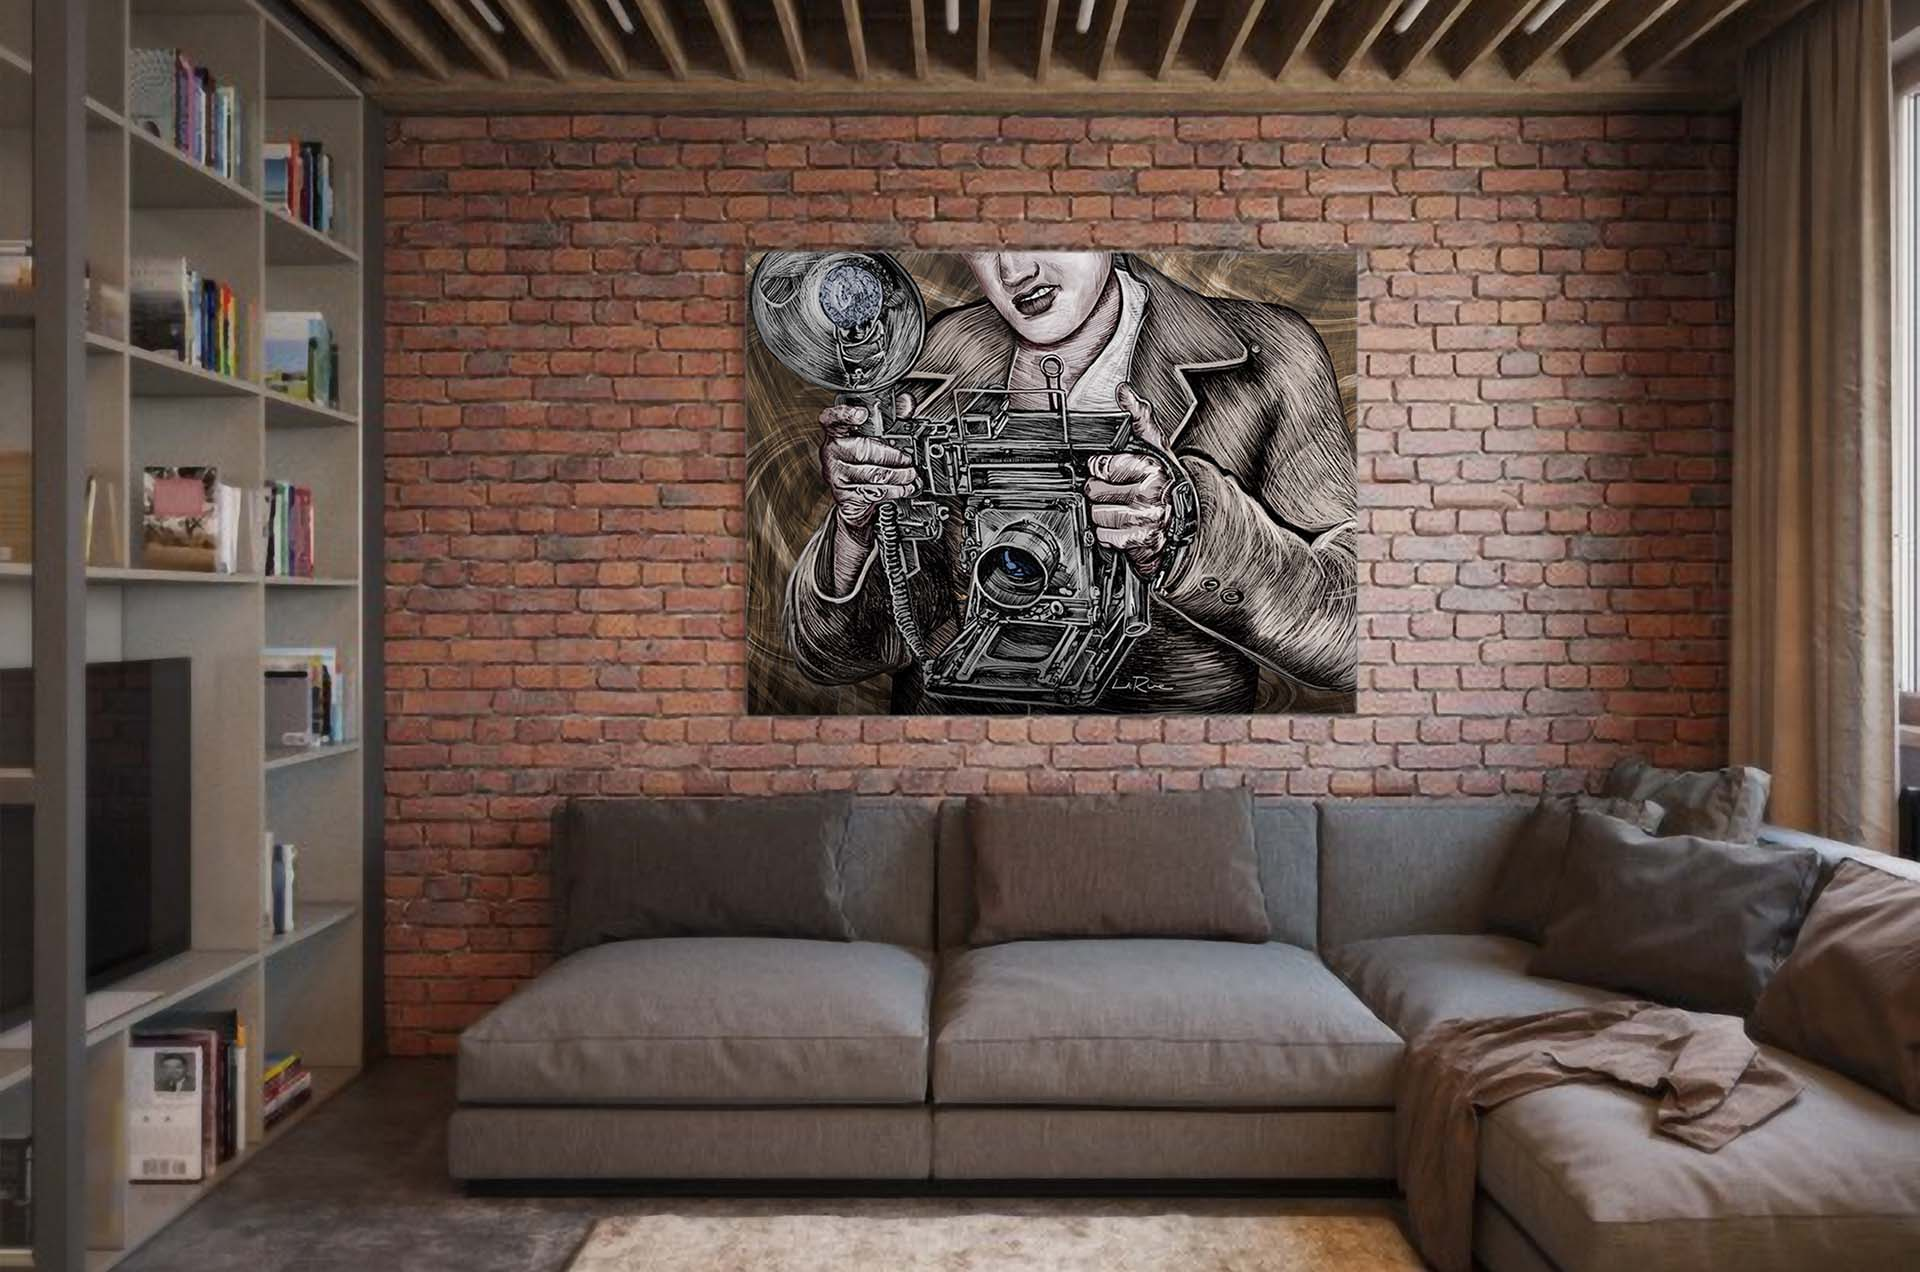 Gallery wall art by Doug LaRue